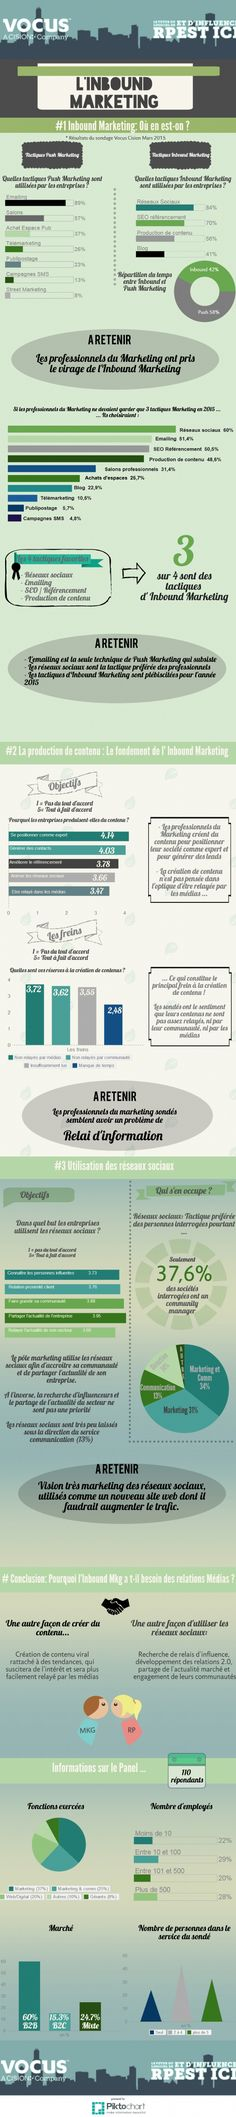 Marketing strategies infographic & data visualisation [Infographie] : où en est-on ? Infographic Description [Infographie] : où en est-on ? Discovred by : Zuma paris – Source – Inbound Marketing, Marketing Direct, Marketing Services, Business Marketing, Content Marketing, Internet Marketing, Online Marketing, Social Media Marketing, Tourism Marketing